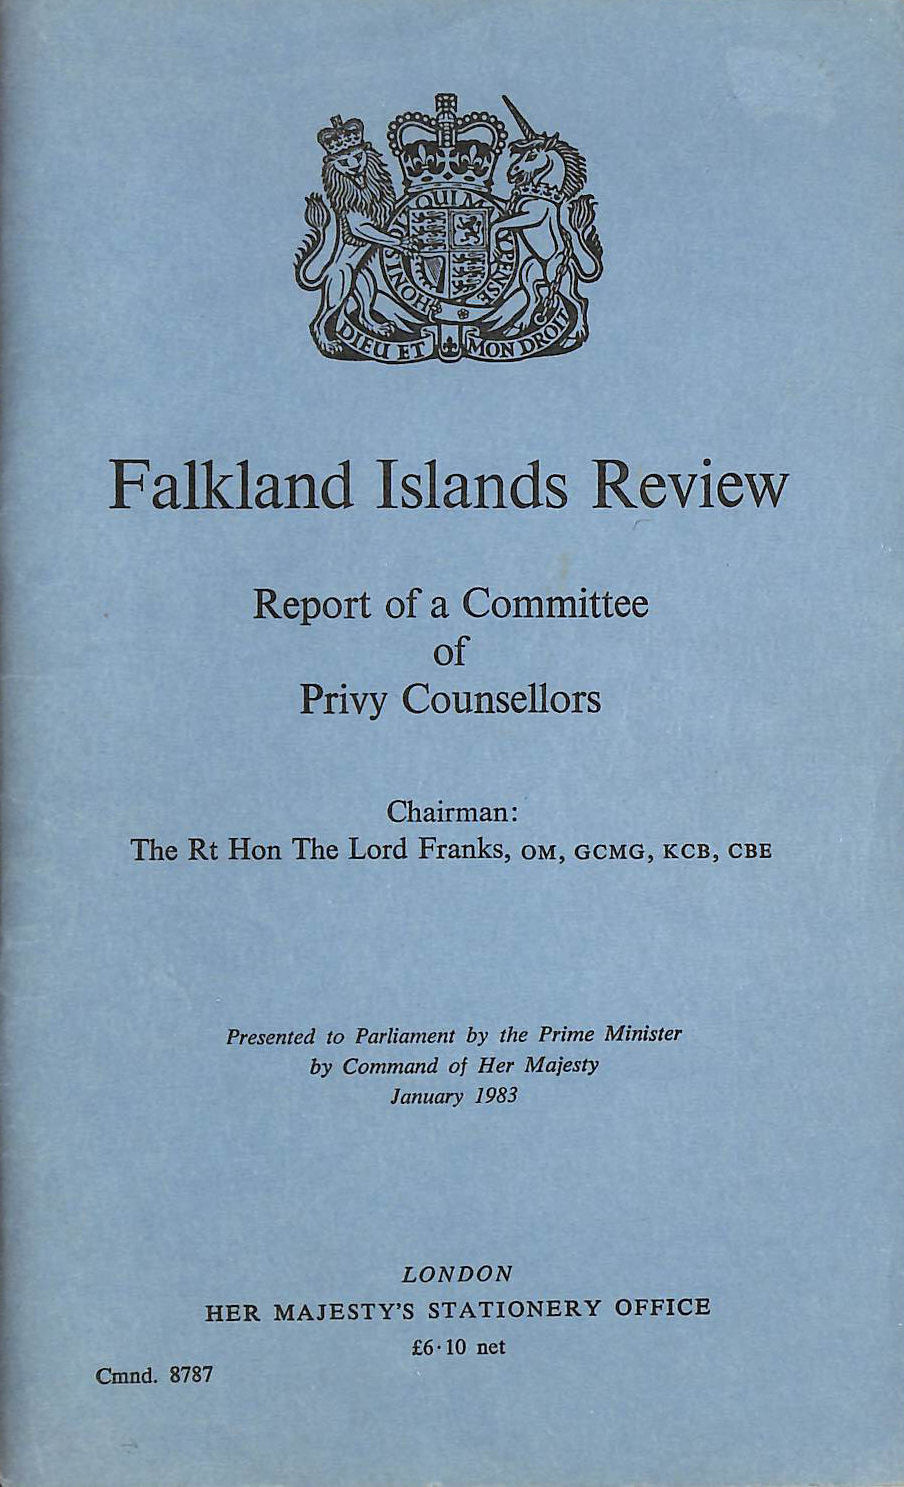 Falkland Islands Review: Report of a Committee of Privy Counsellors. Chmn.Lord Franks (Command 8787), Report Of A Committee Of Privy Counsellors: